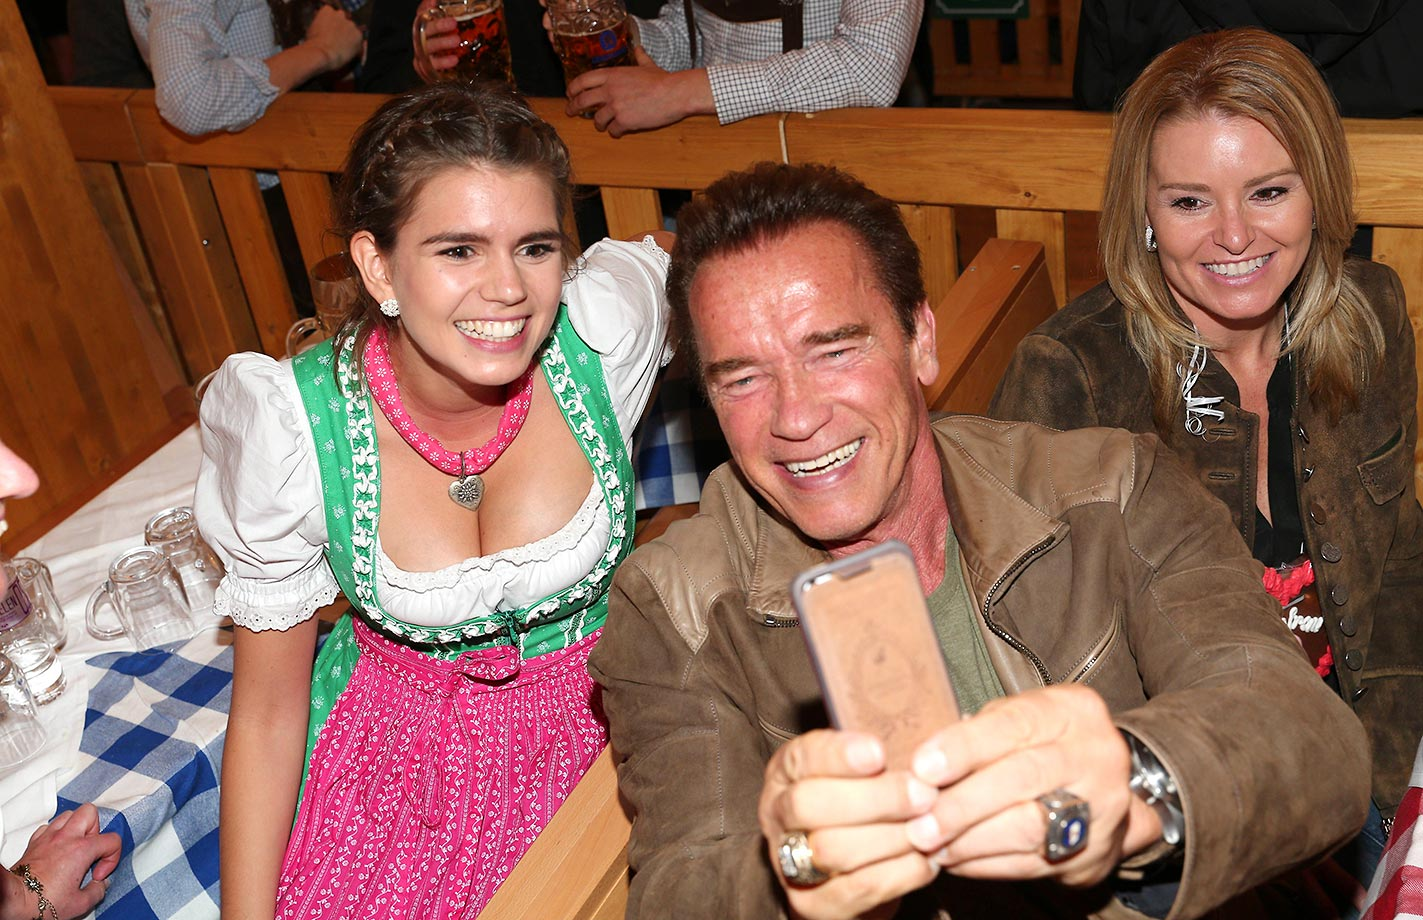 Arnold Schwarzenegger and Heather Milligan (right) visit the Schuetzenfestzelt during Oktoberfest 2015.